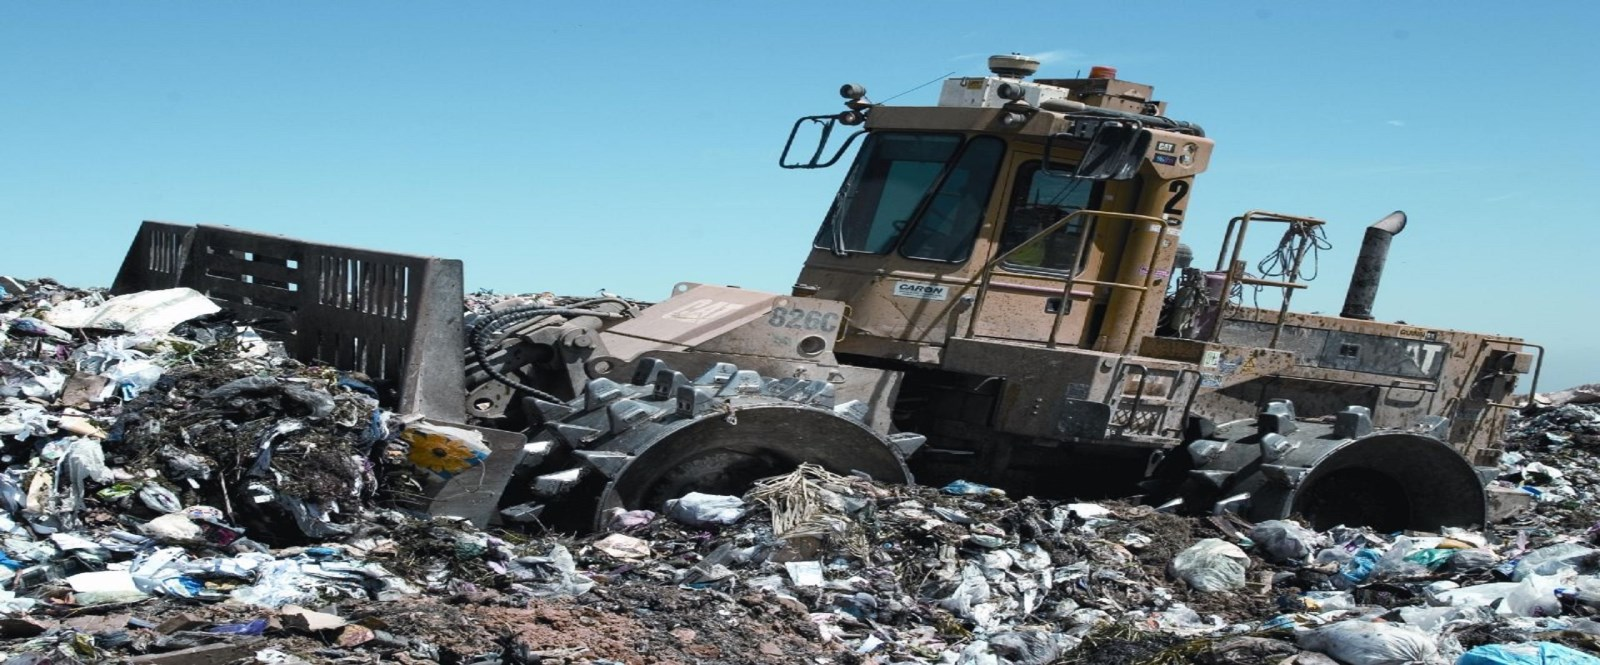 Cornwall Machine at landfill site packing garbage